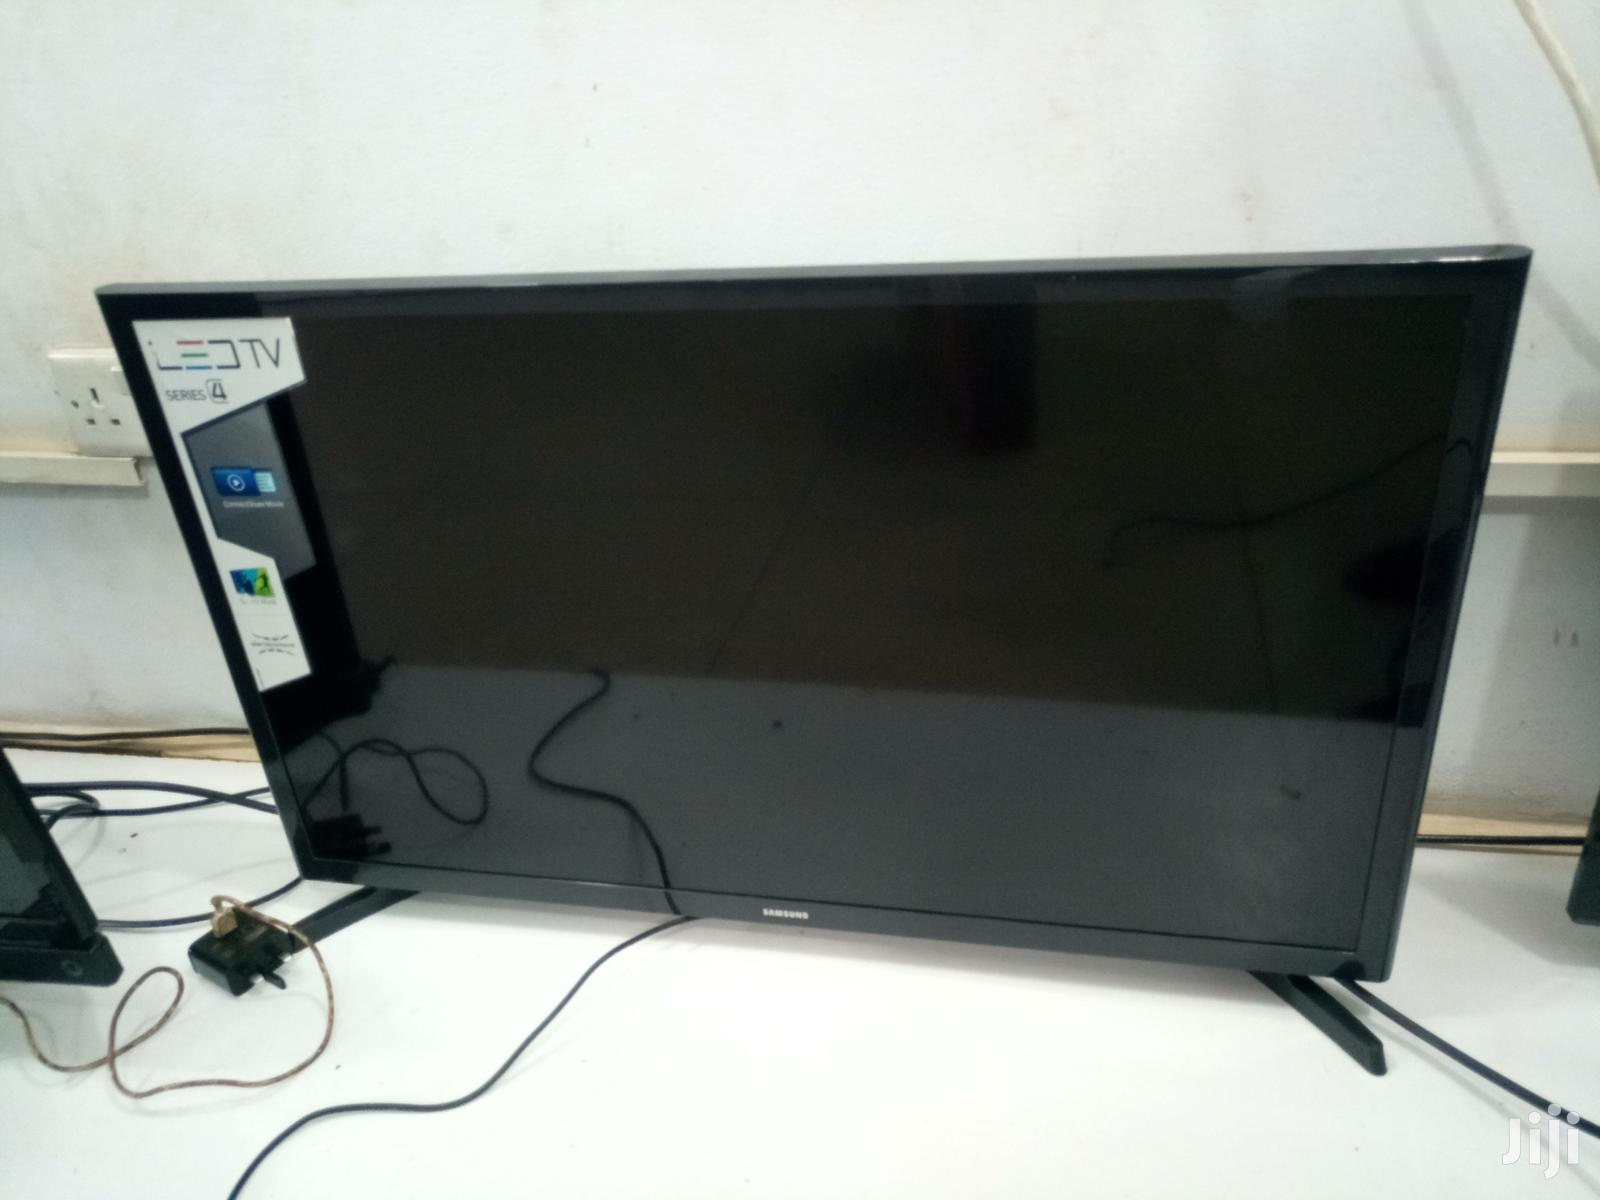 Samsung Flat Screen Digital TV 32""